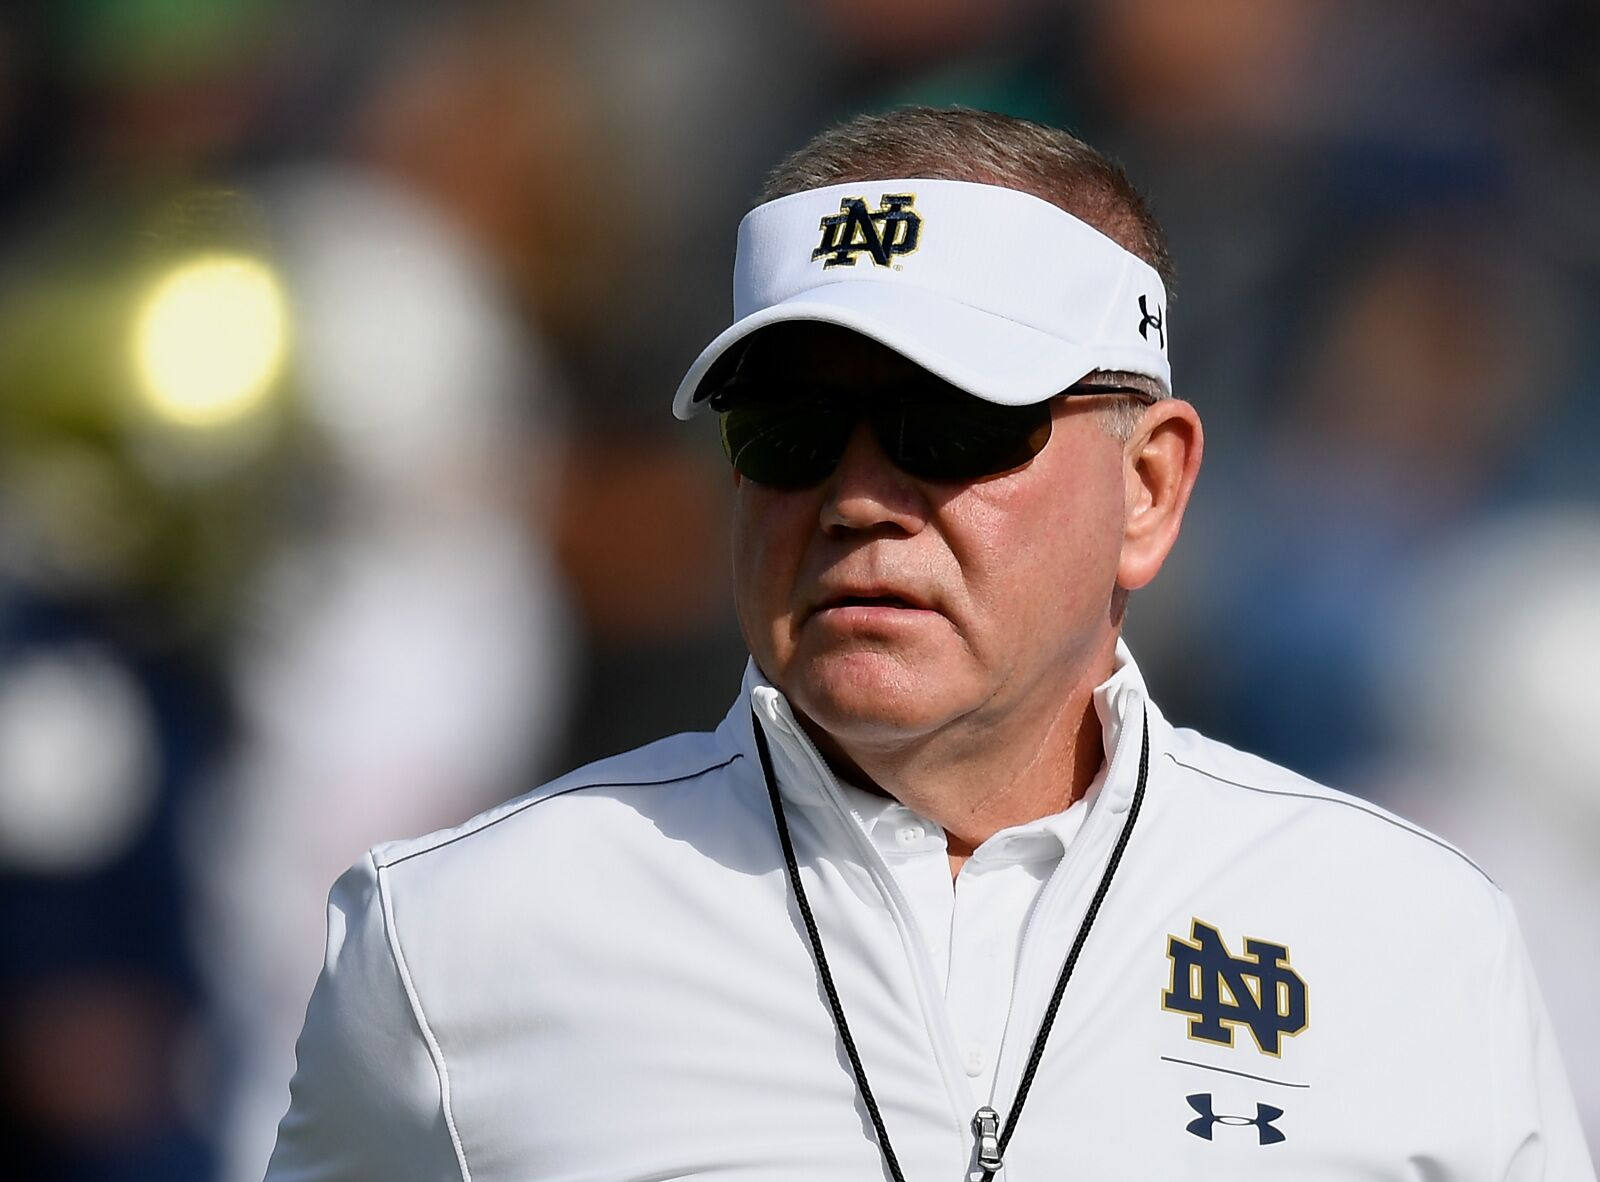 If Navy beats Notre Dame, will Brian Kelly be fired?